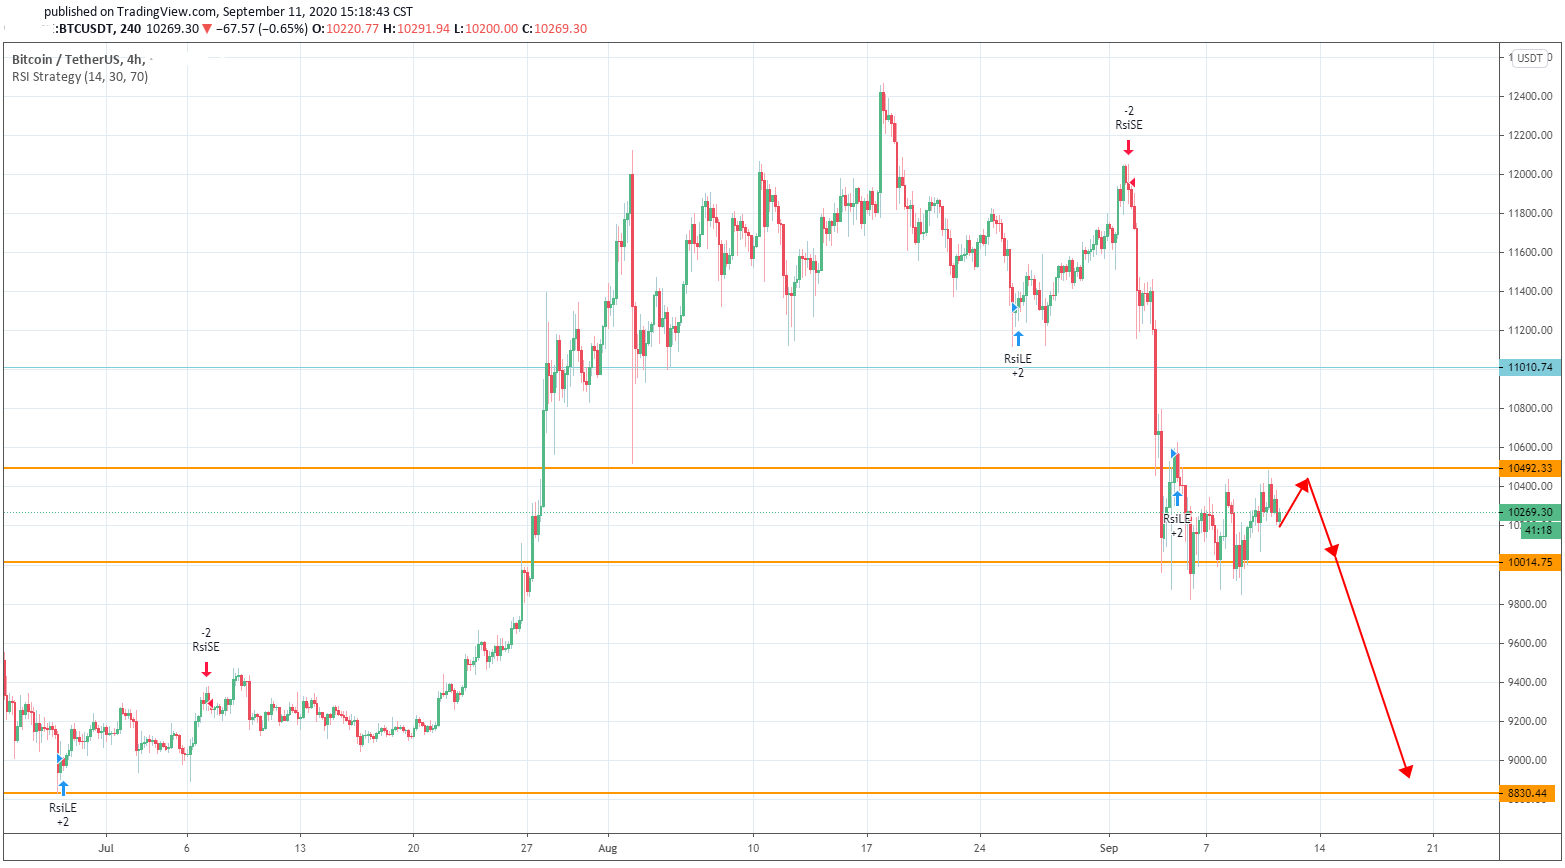 Bitcoin's Price is Driven by the Fear of CME Gap-Fill that could Happen